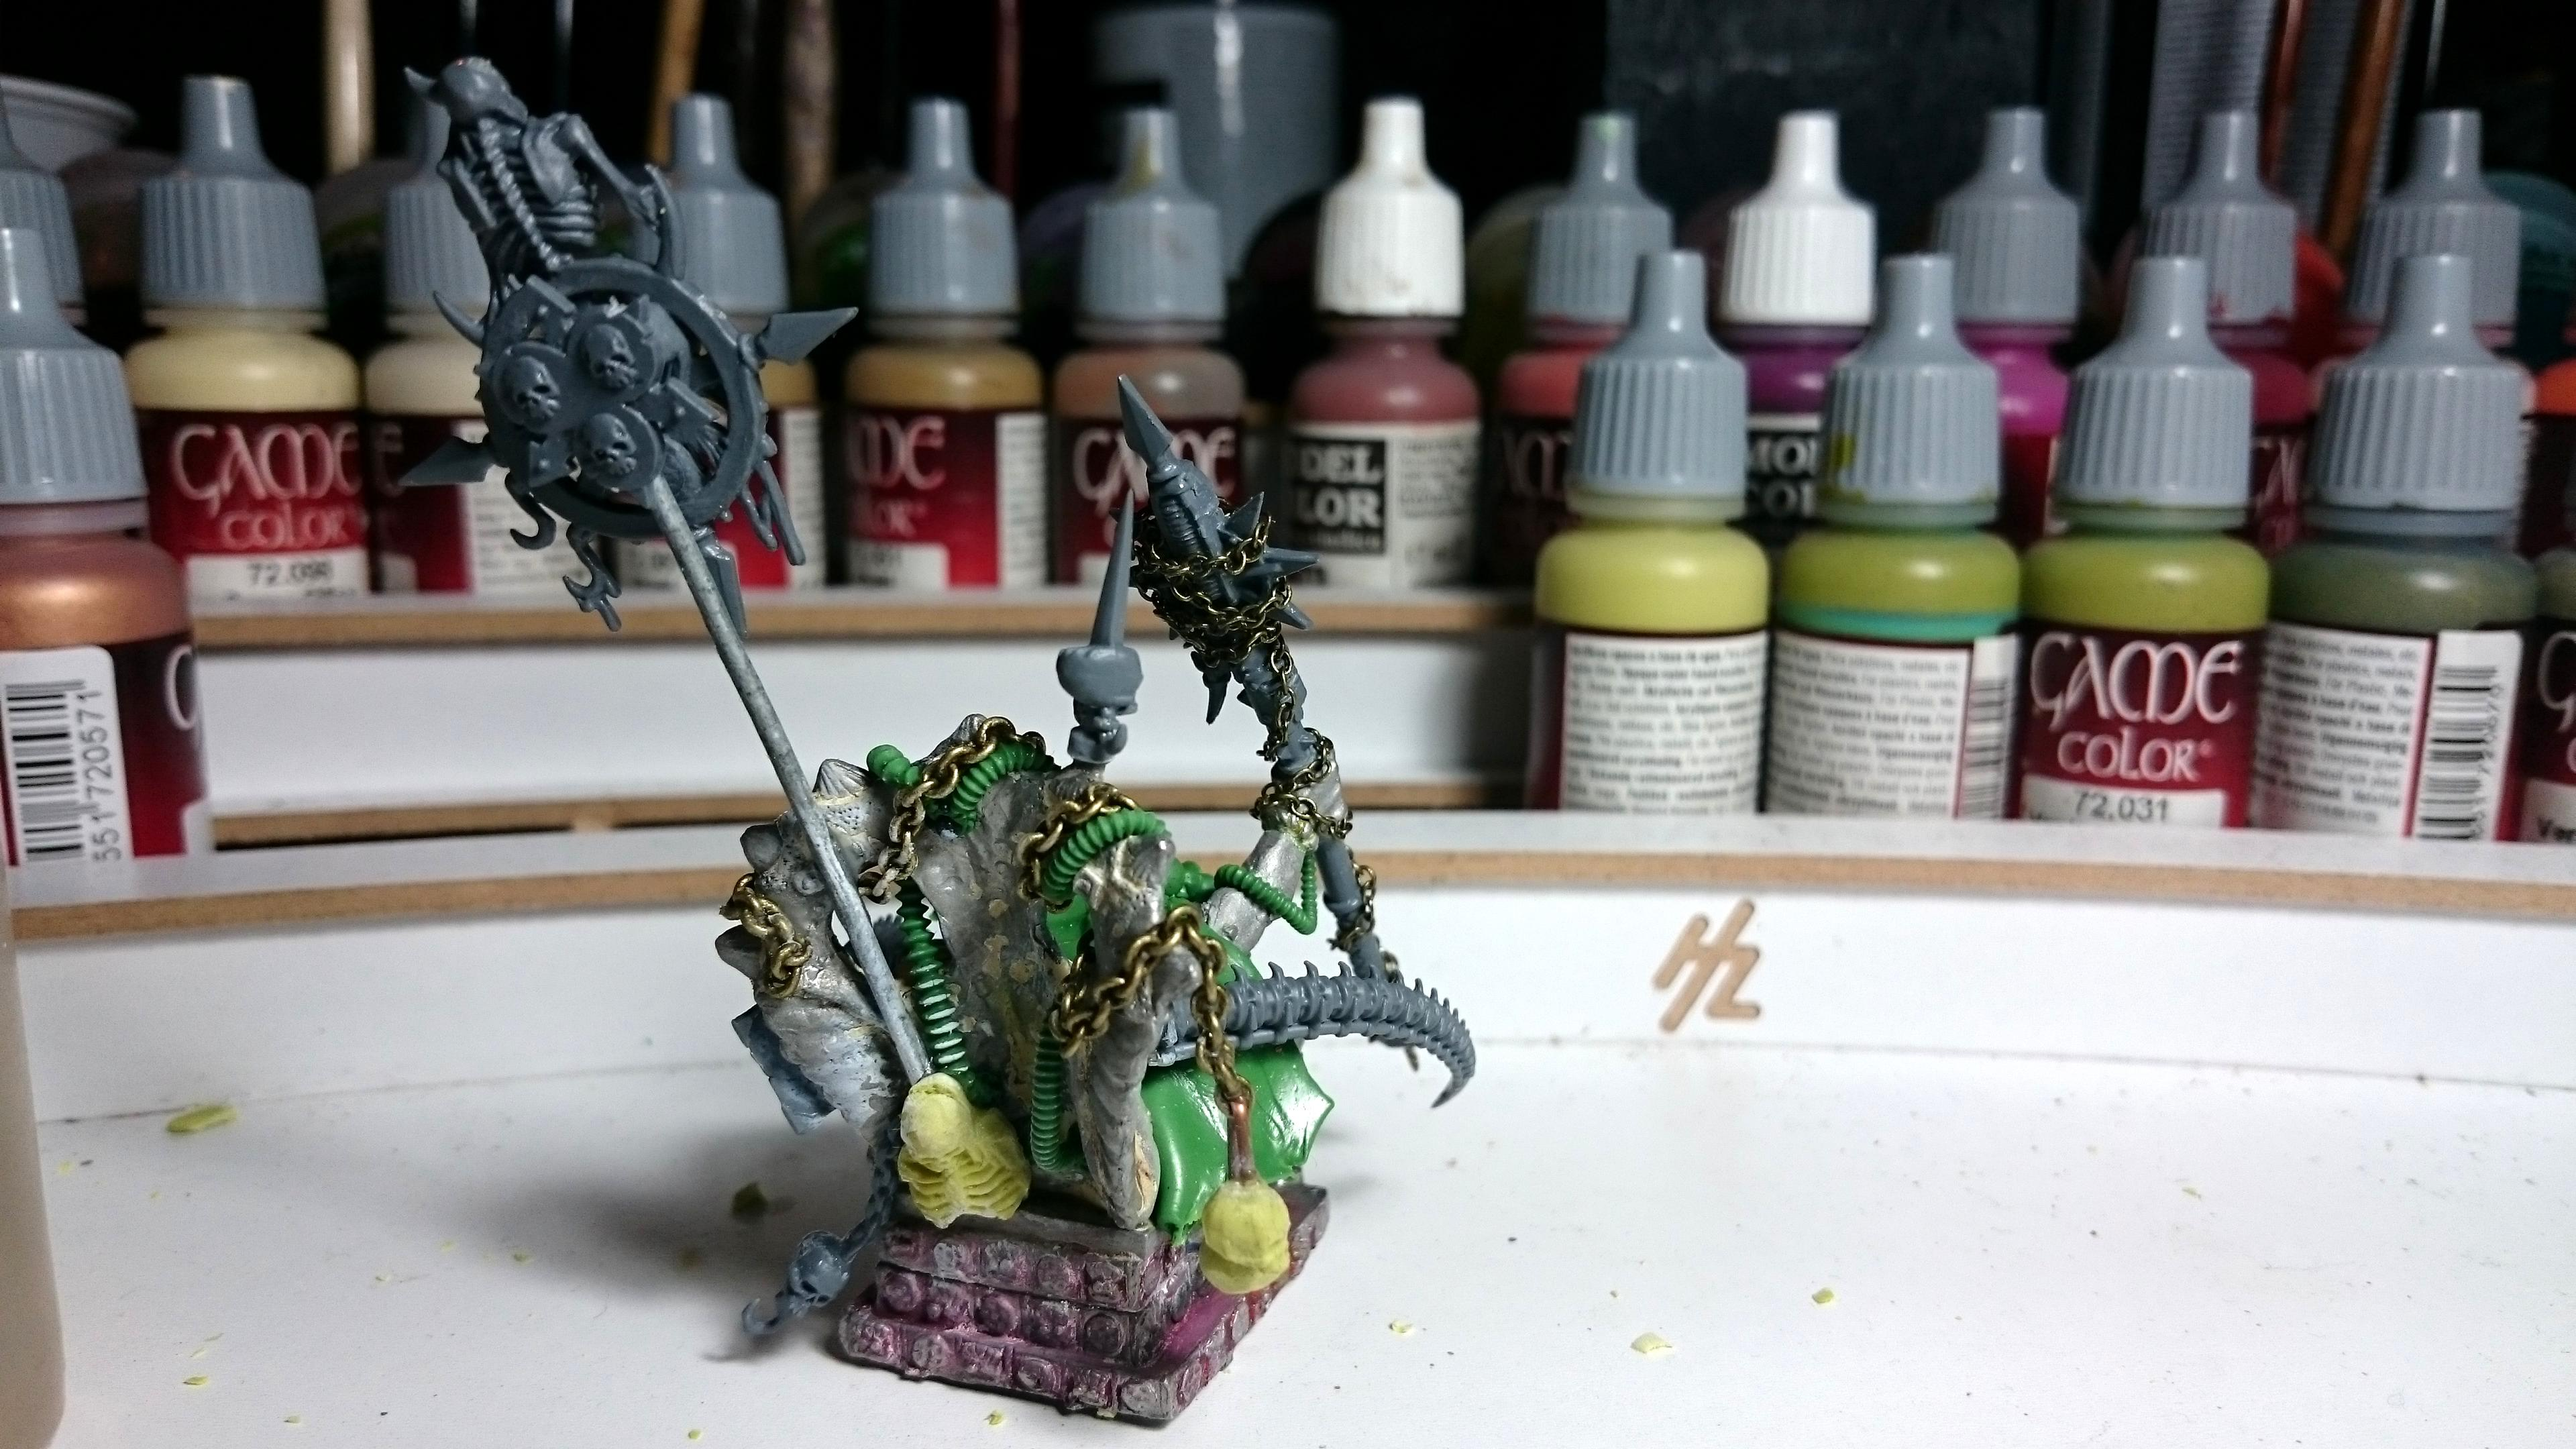 Chaos, Chaos Space Marines, Conversion, Daemons, Nurgle, Palanquin, Plague, Prince, Sorcerer, Space, Space Marines, Warhammer 40,000, Warhammer Fantasy, Wh40